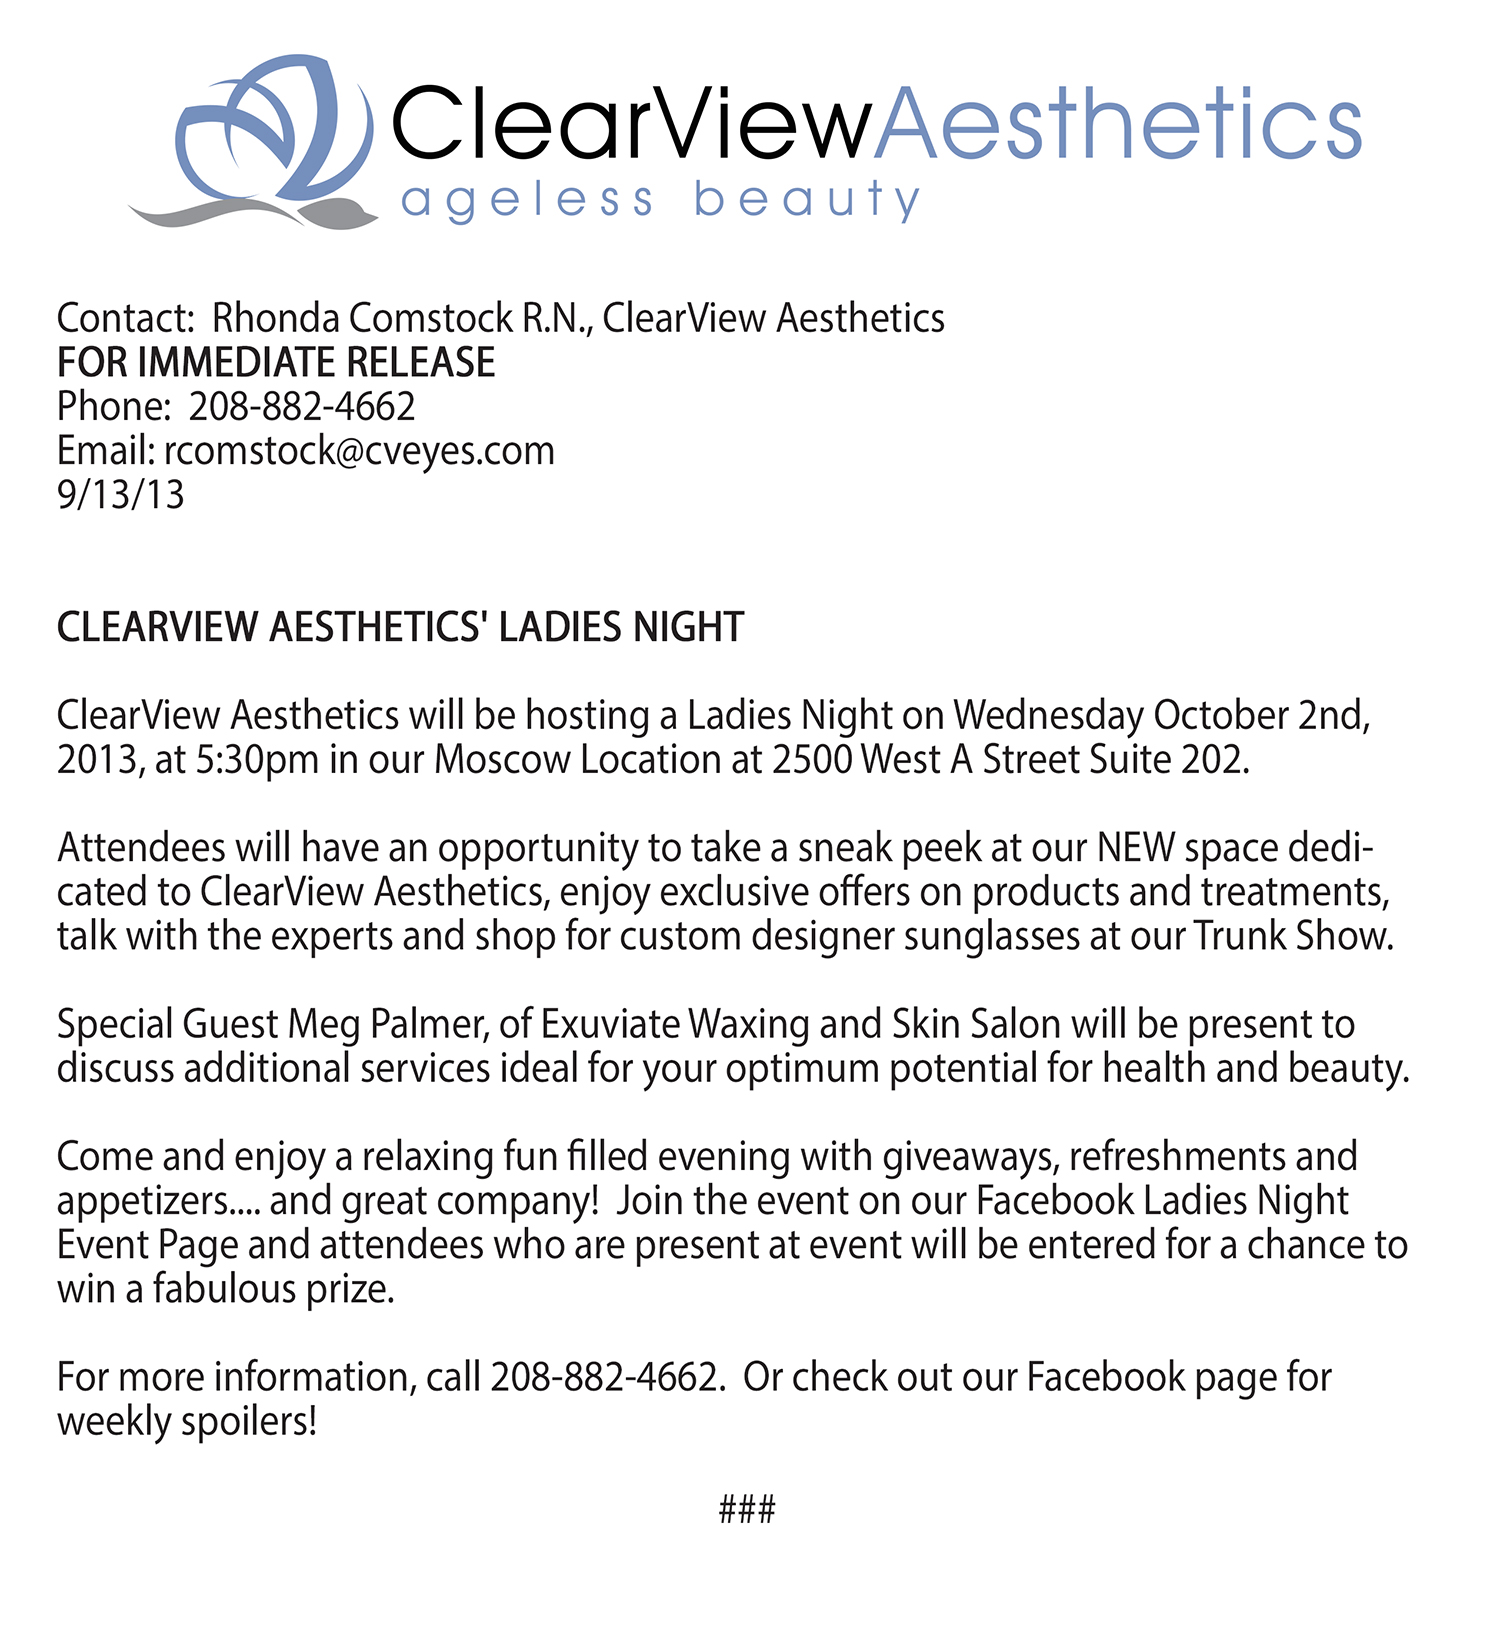 Ladies Night Press Release October 2013